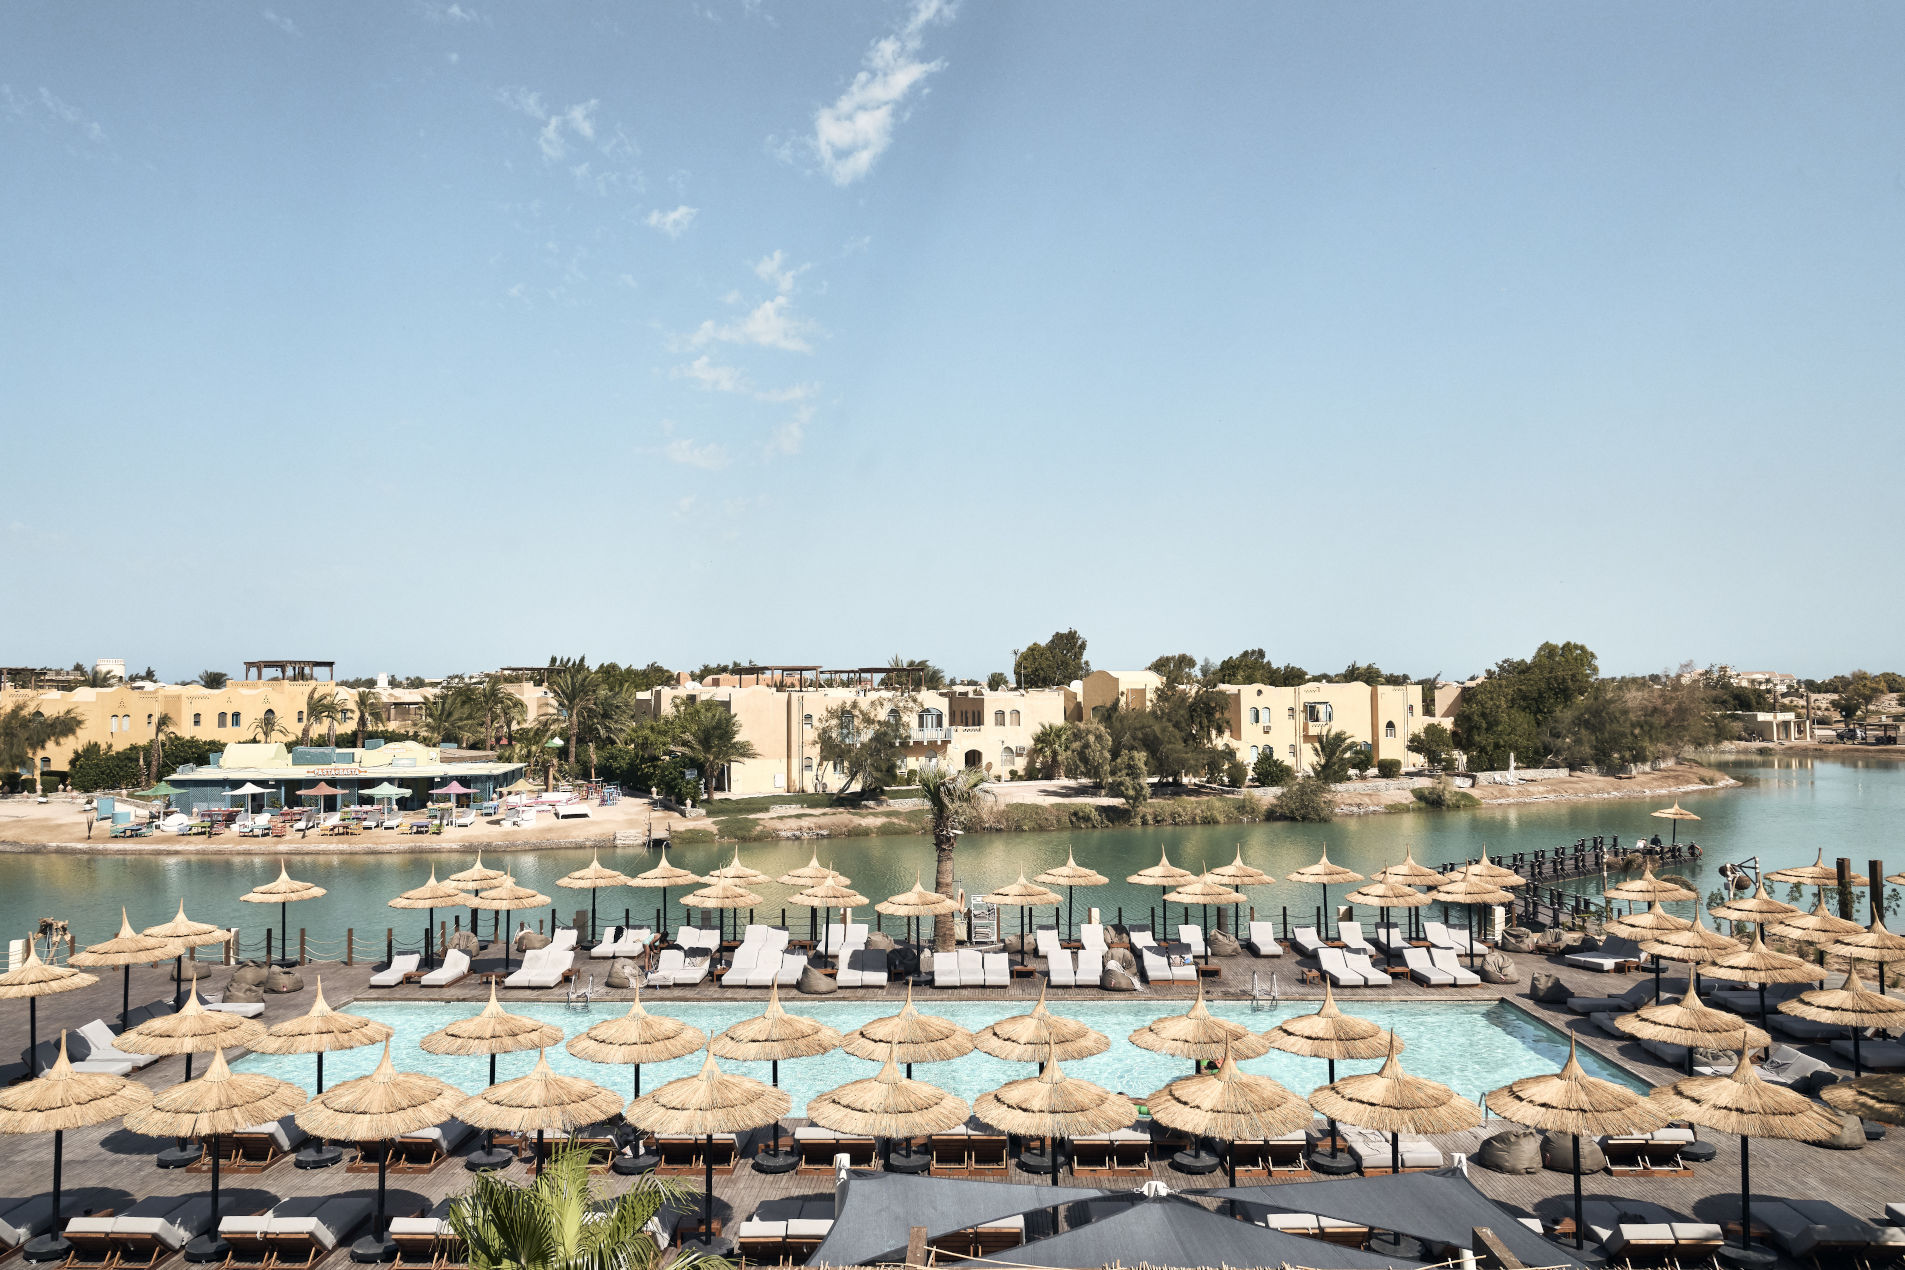 An overview of adults swimming pool at Cook's Club Hotel surrounded by laidback sunbeds with a view to Red Sea lagoon